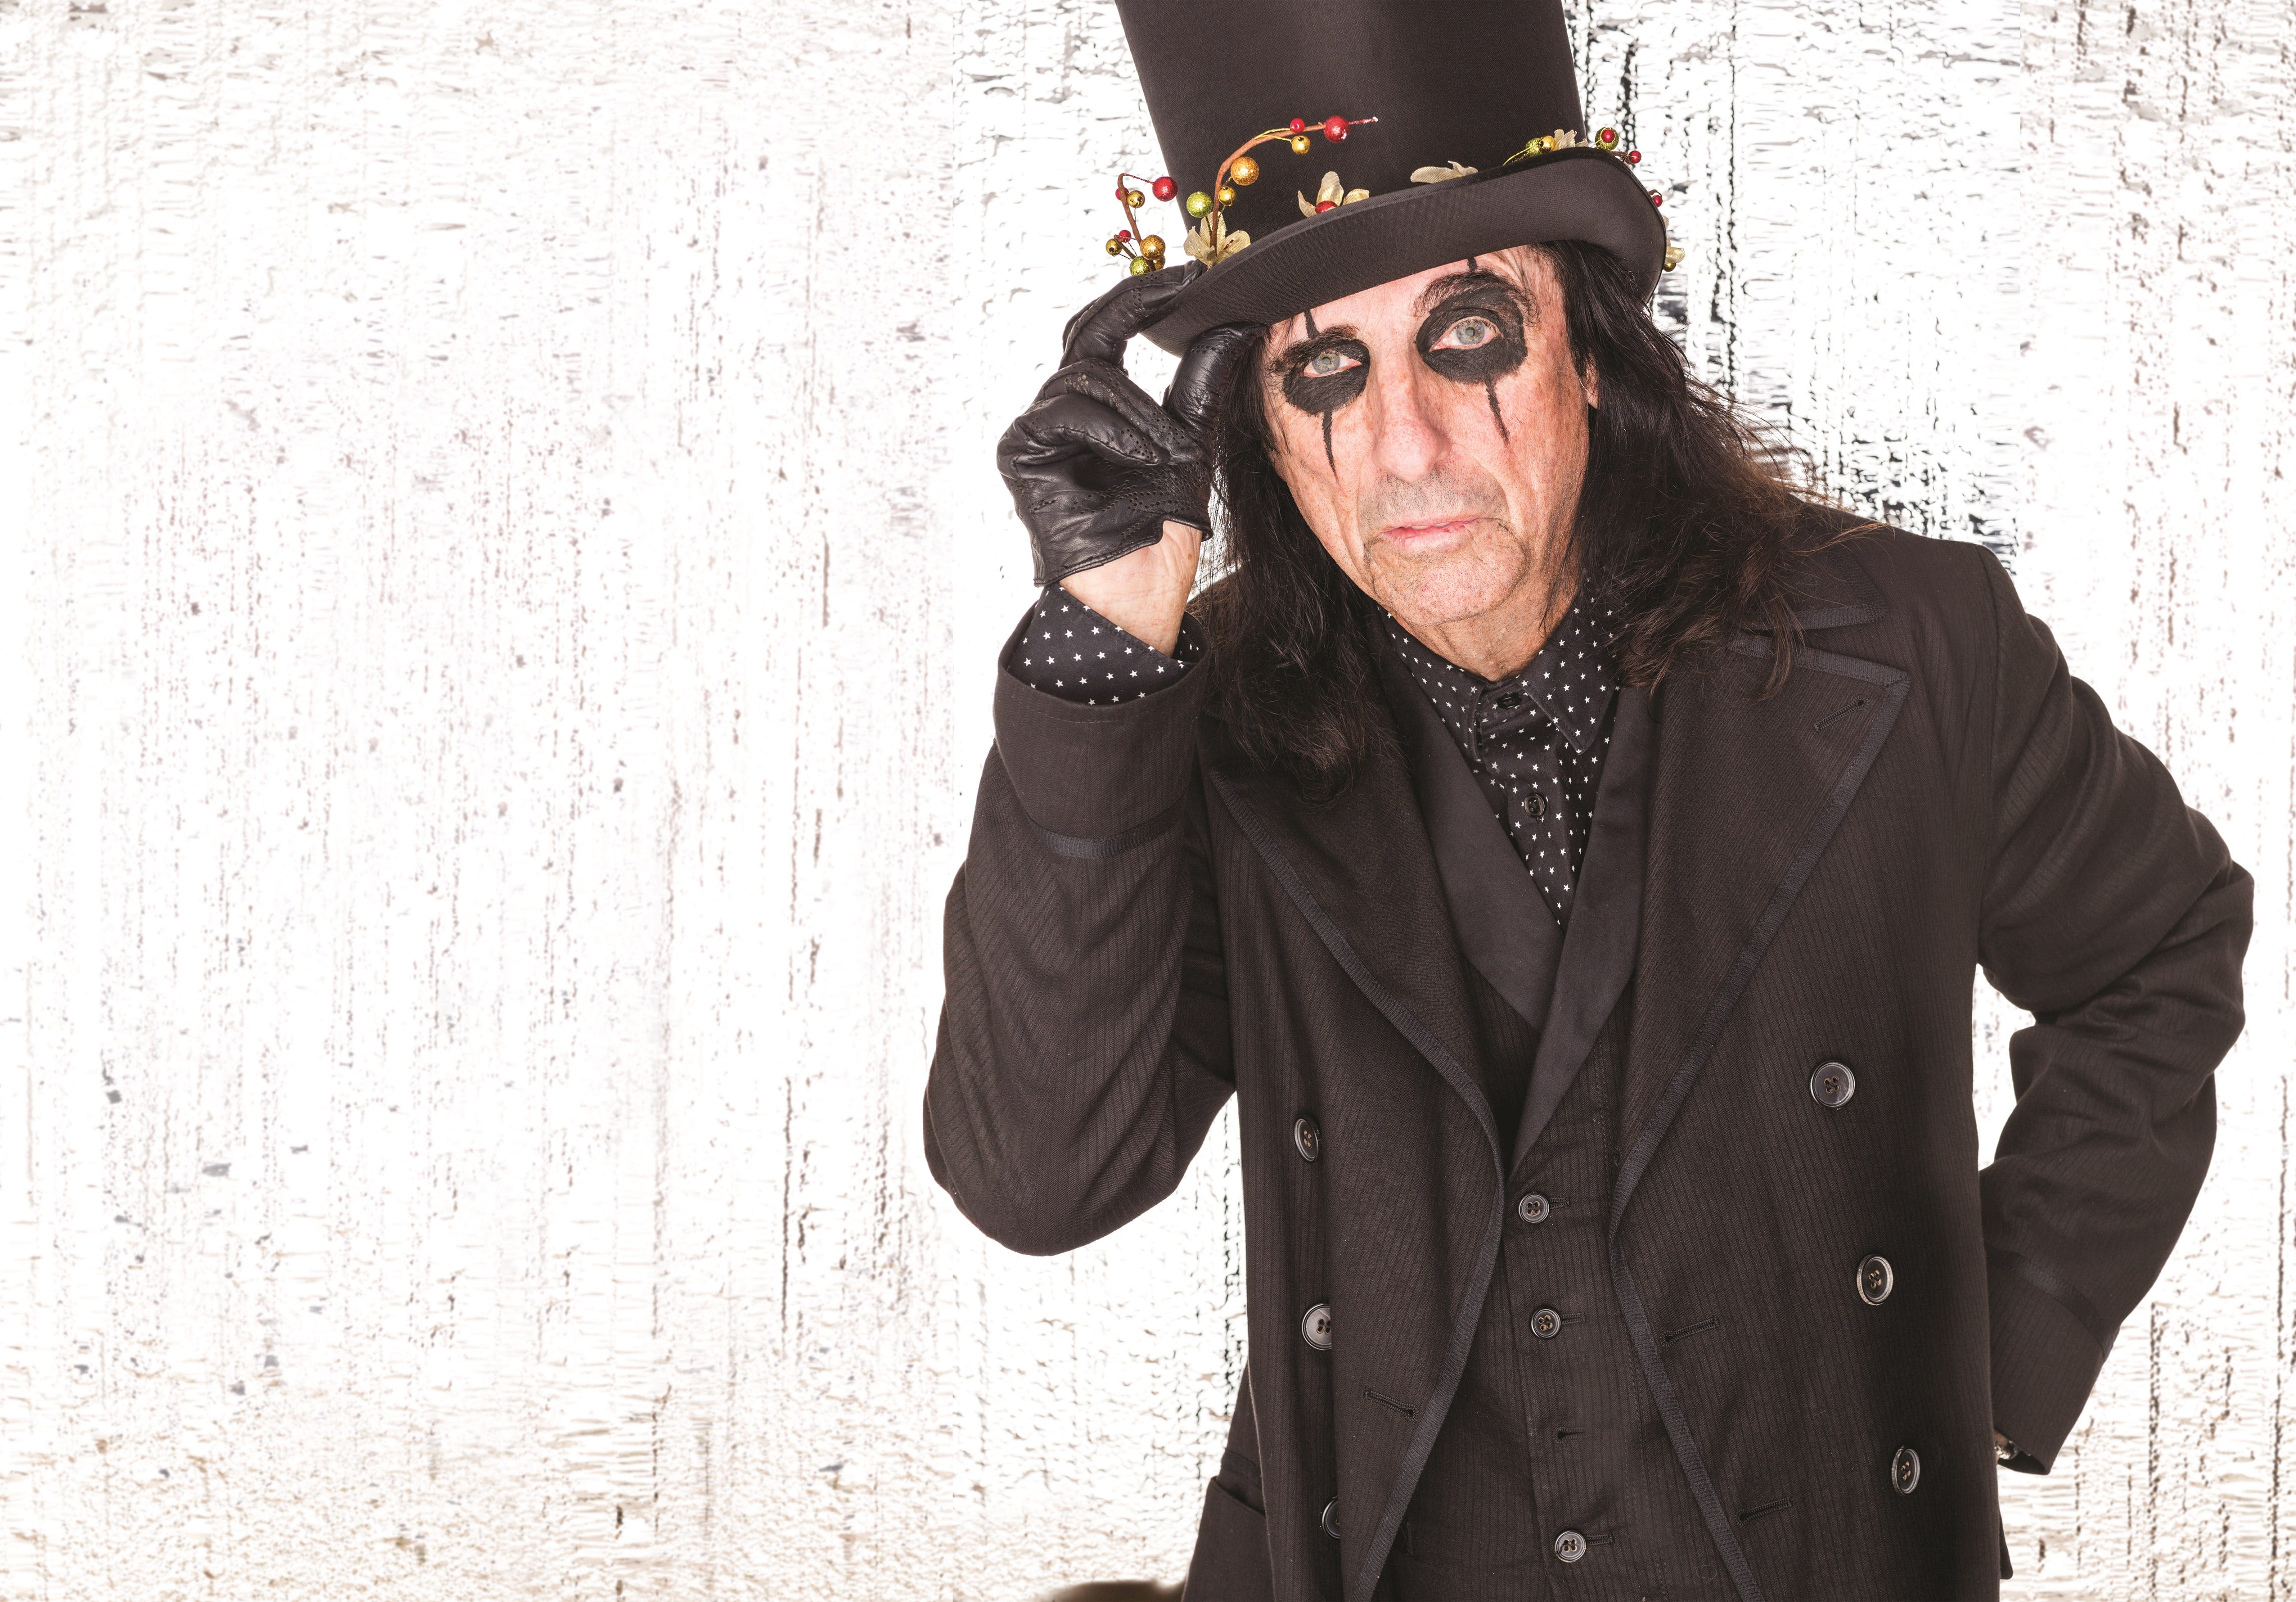 636471401112004094-Alice-Cooper-Pudding-Photo Alice Cooper: Still rockin' and shockin' on stage at 70, but at home, he's grandpa